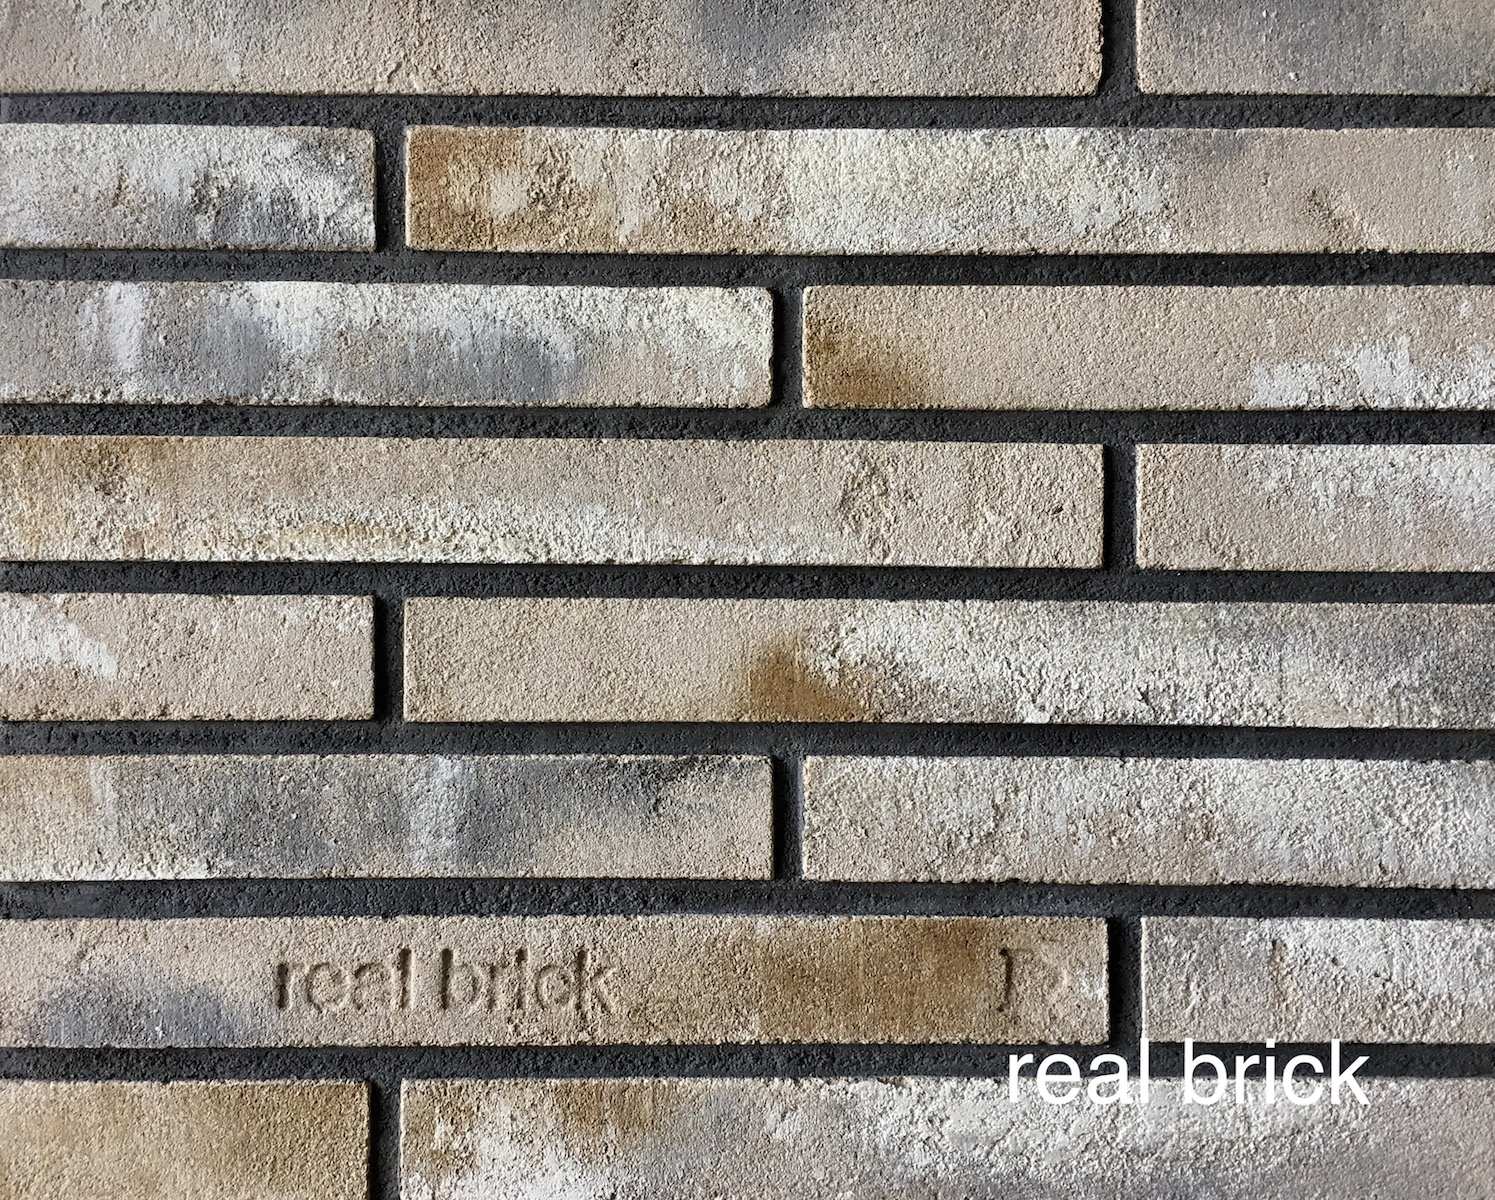 Real brick 7 rigel